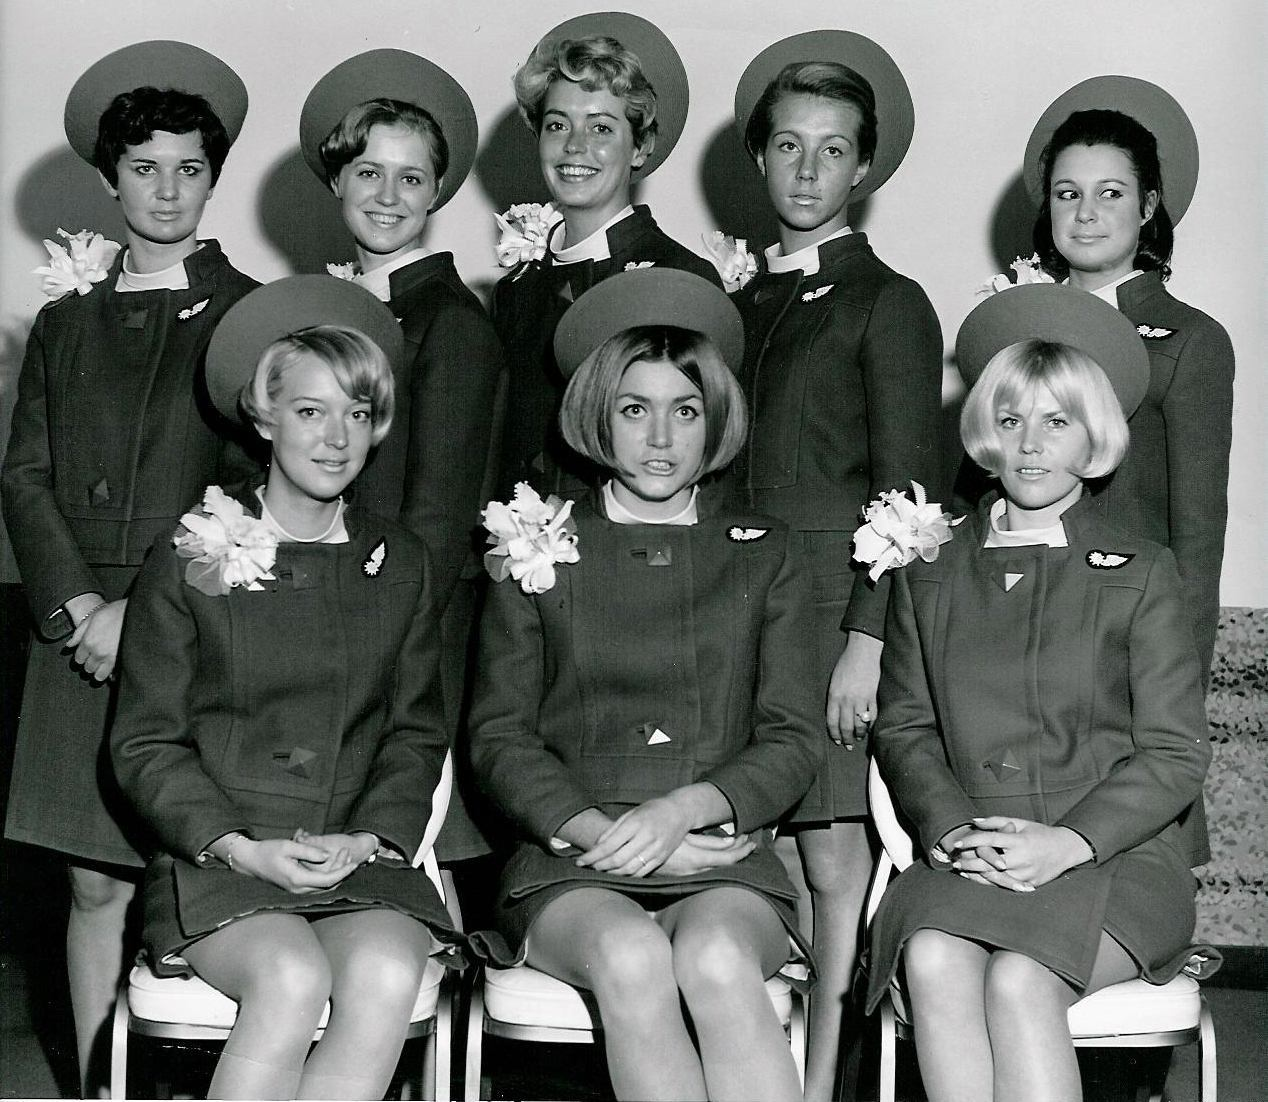 The Groovy Age Of Flight A Look At Stewardesses Of The 1960s 70s